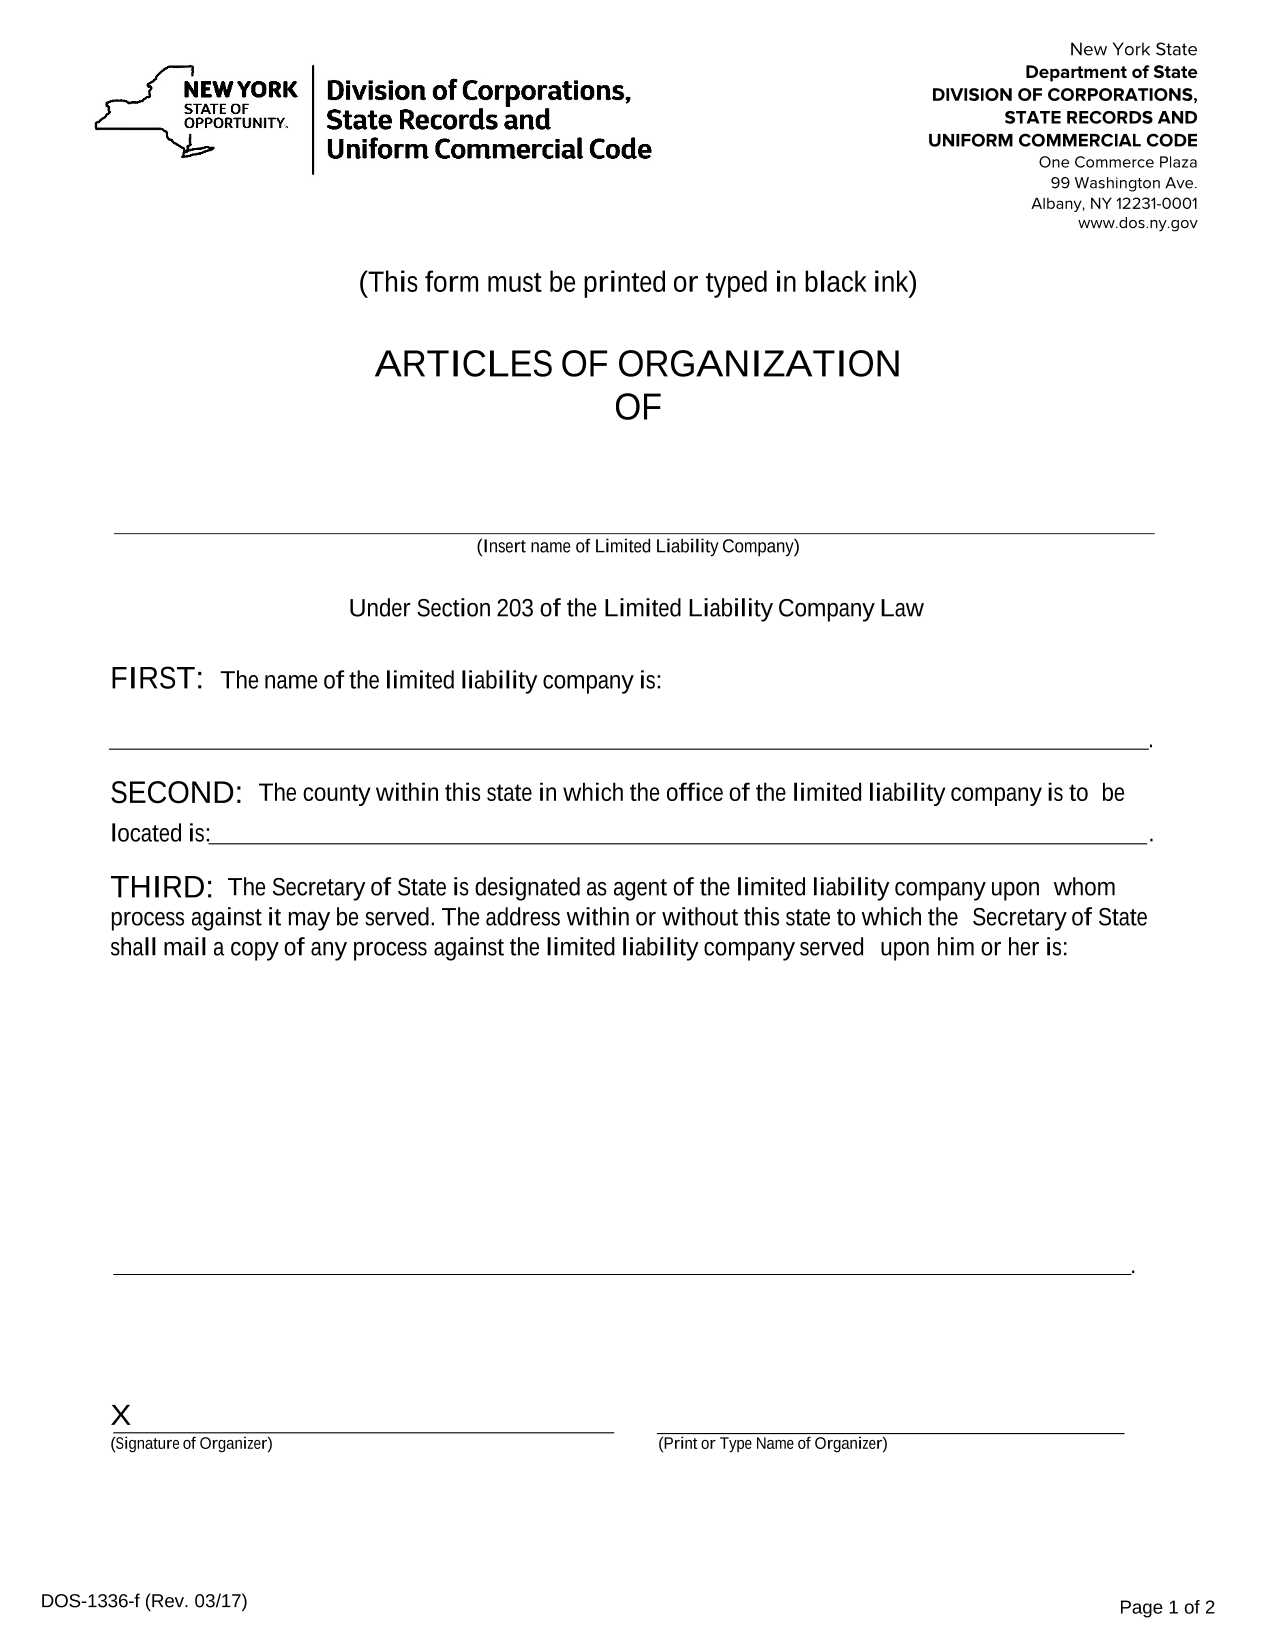 New York LLC Articles of Organization